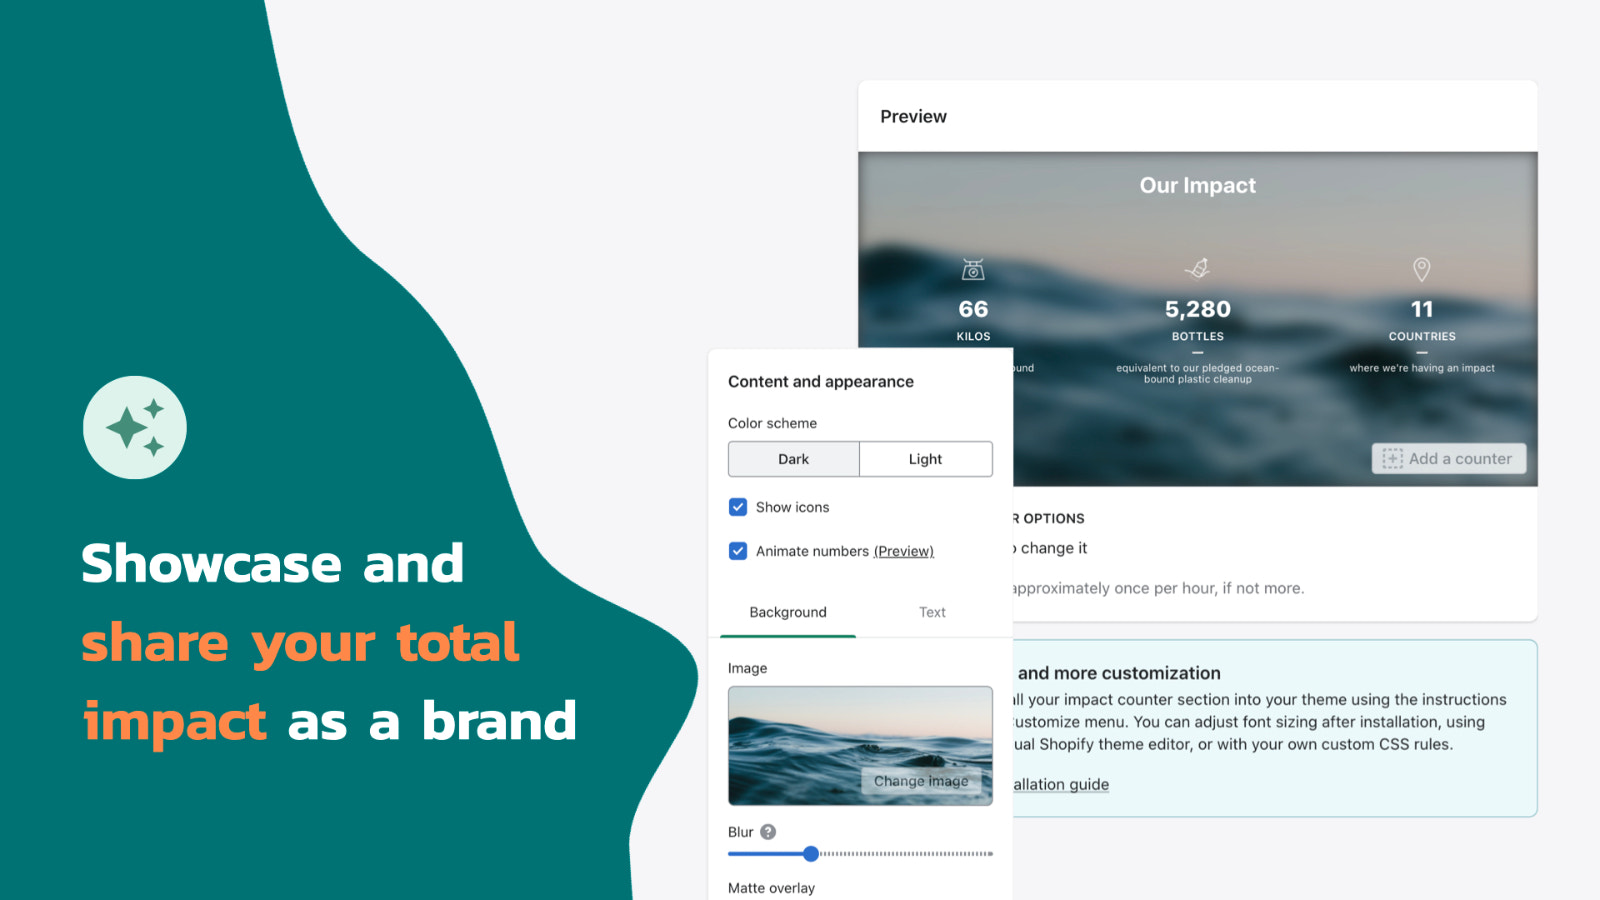 Showcase and share your total impact as a brand